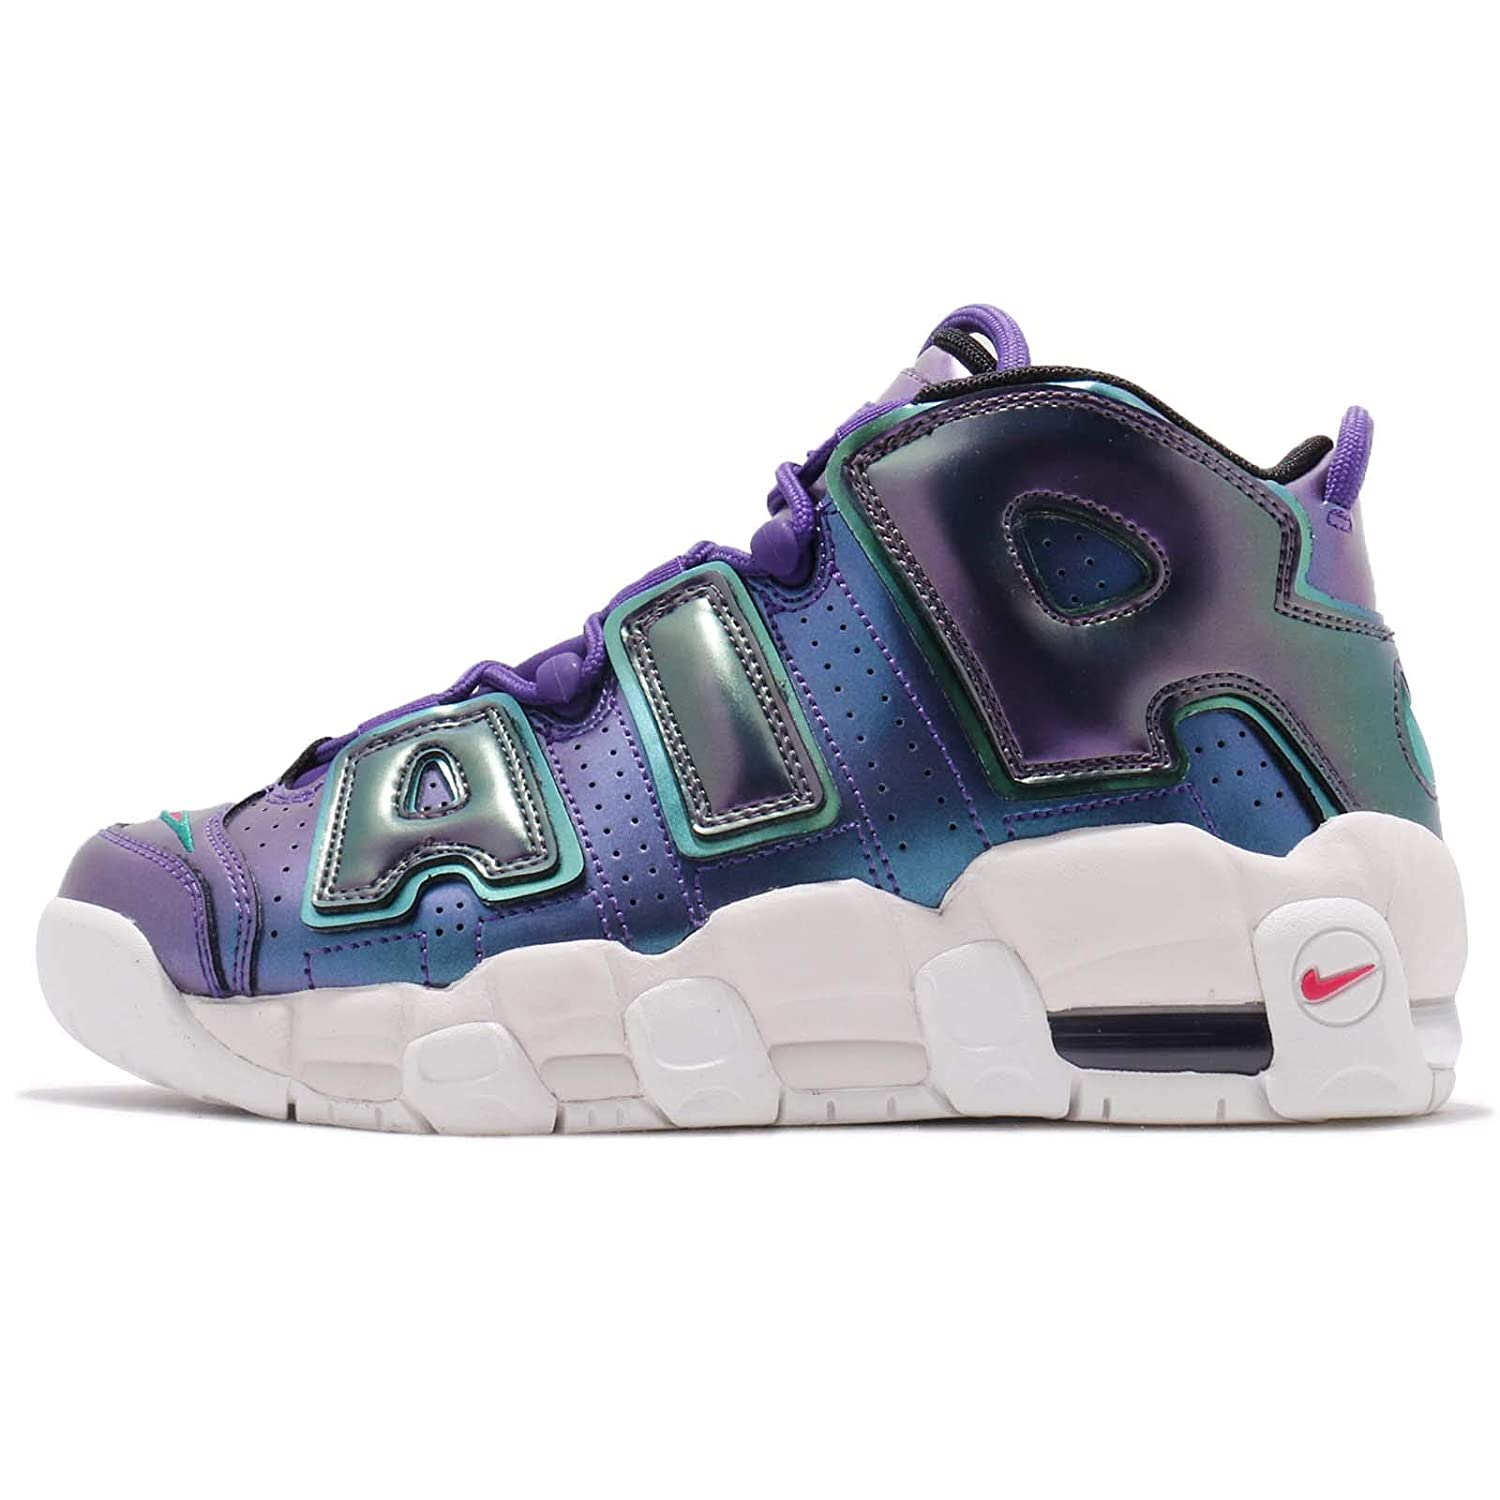 Big Kids 922845-500 Size 6 Nike Air More Uptempo Se gs